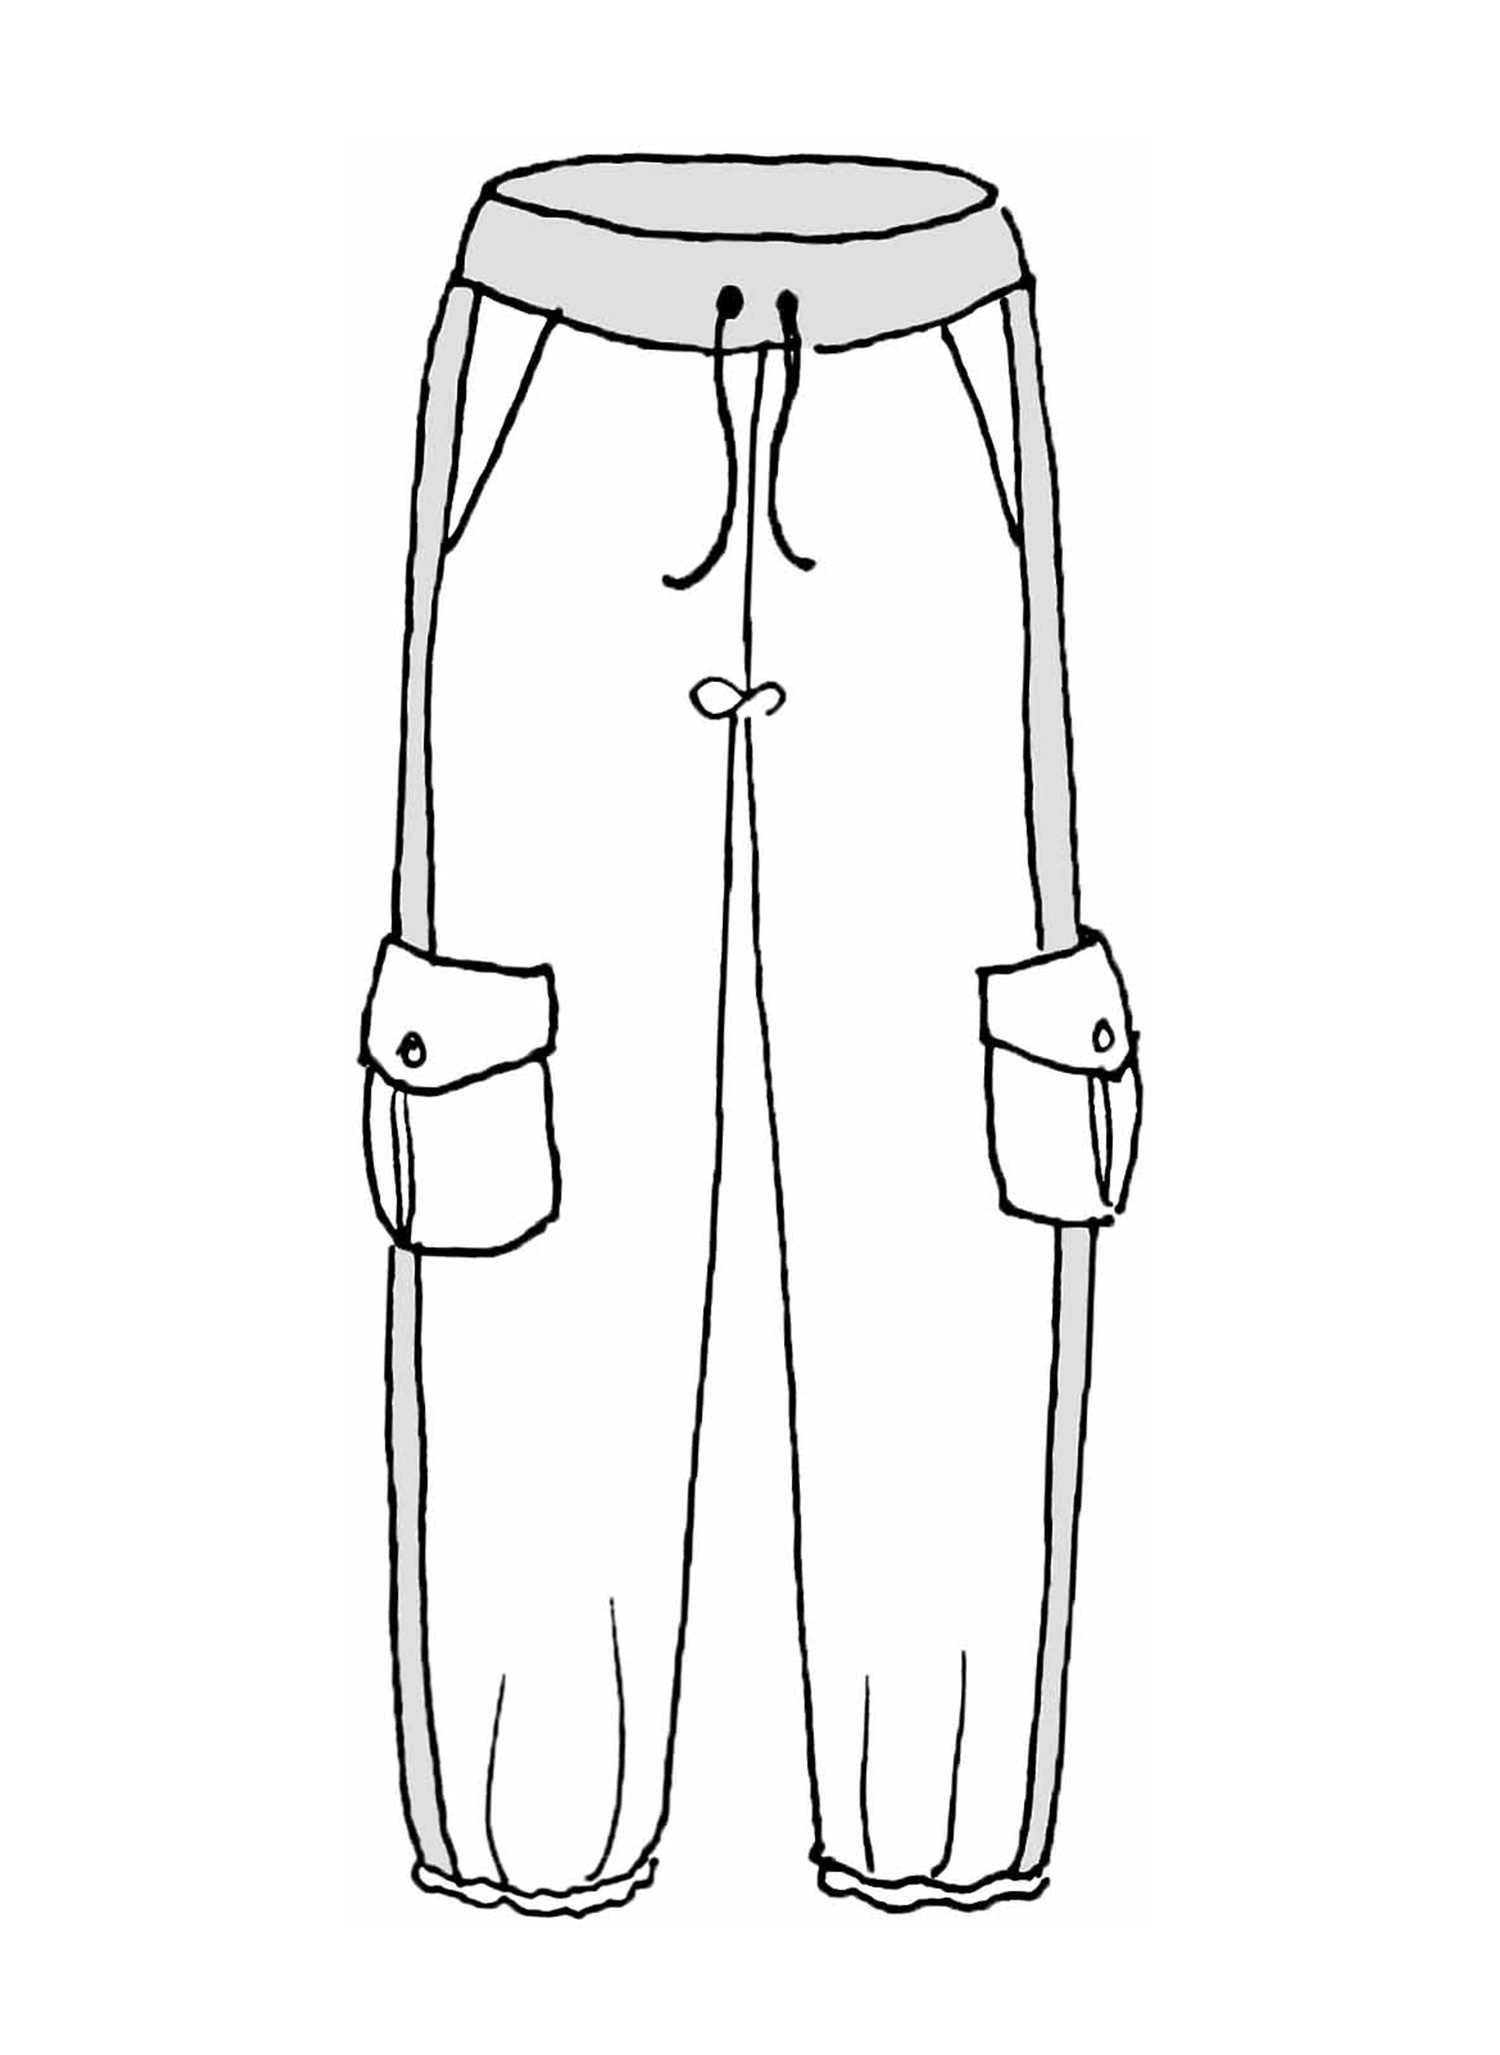 Base Pant sketch image